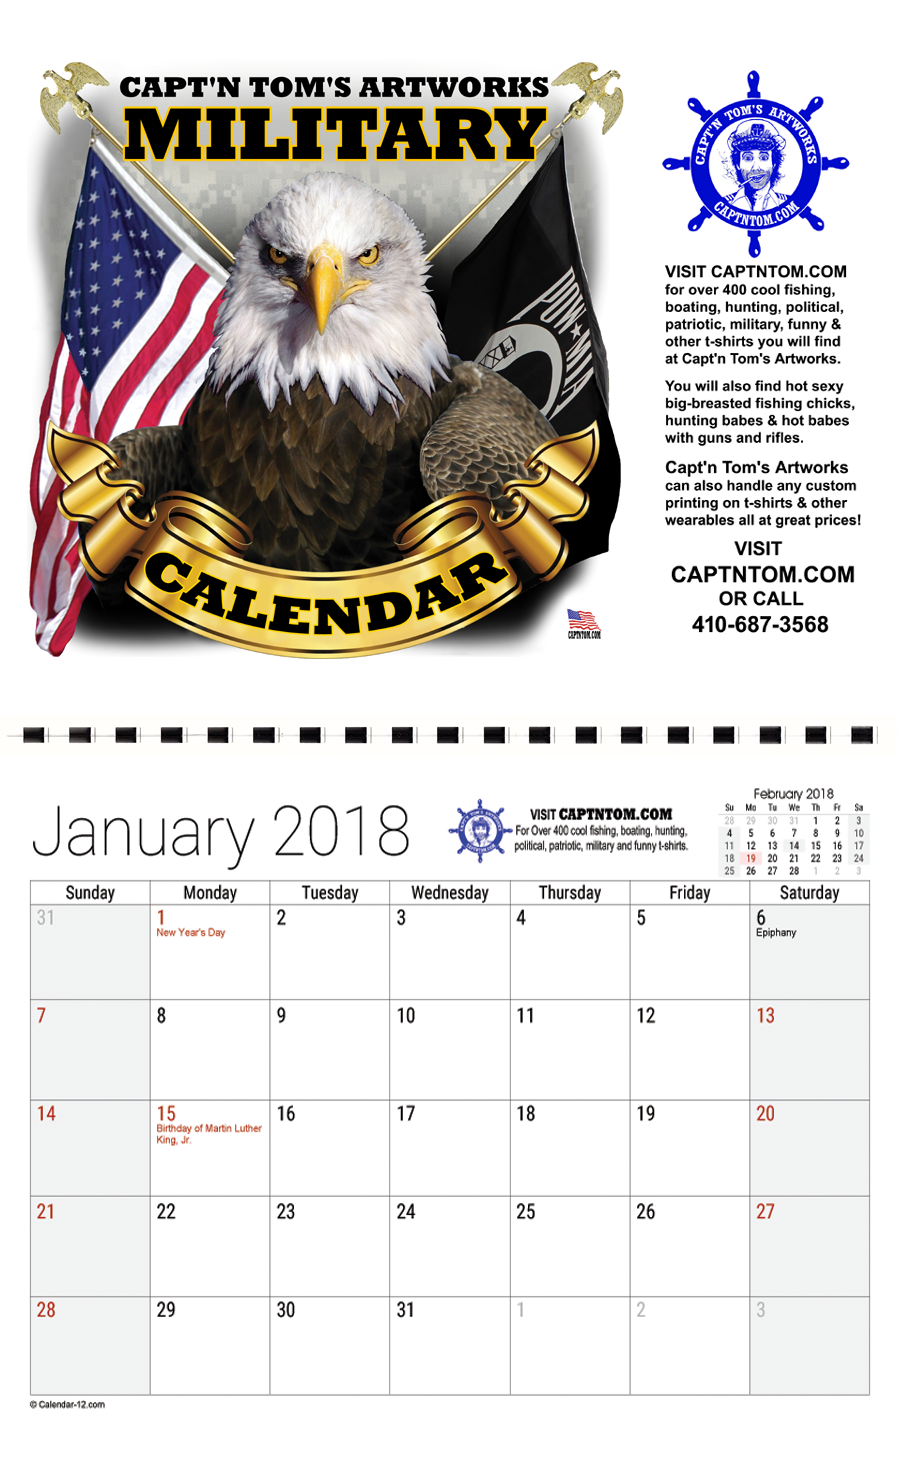 This calendar features 12 military t shirt designs by Capt'n Tom's